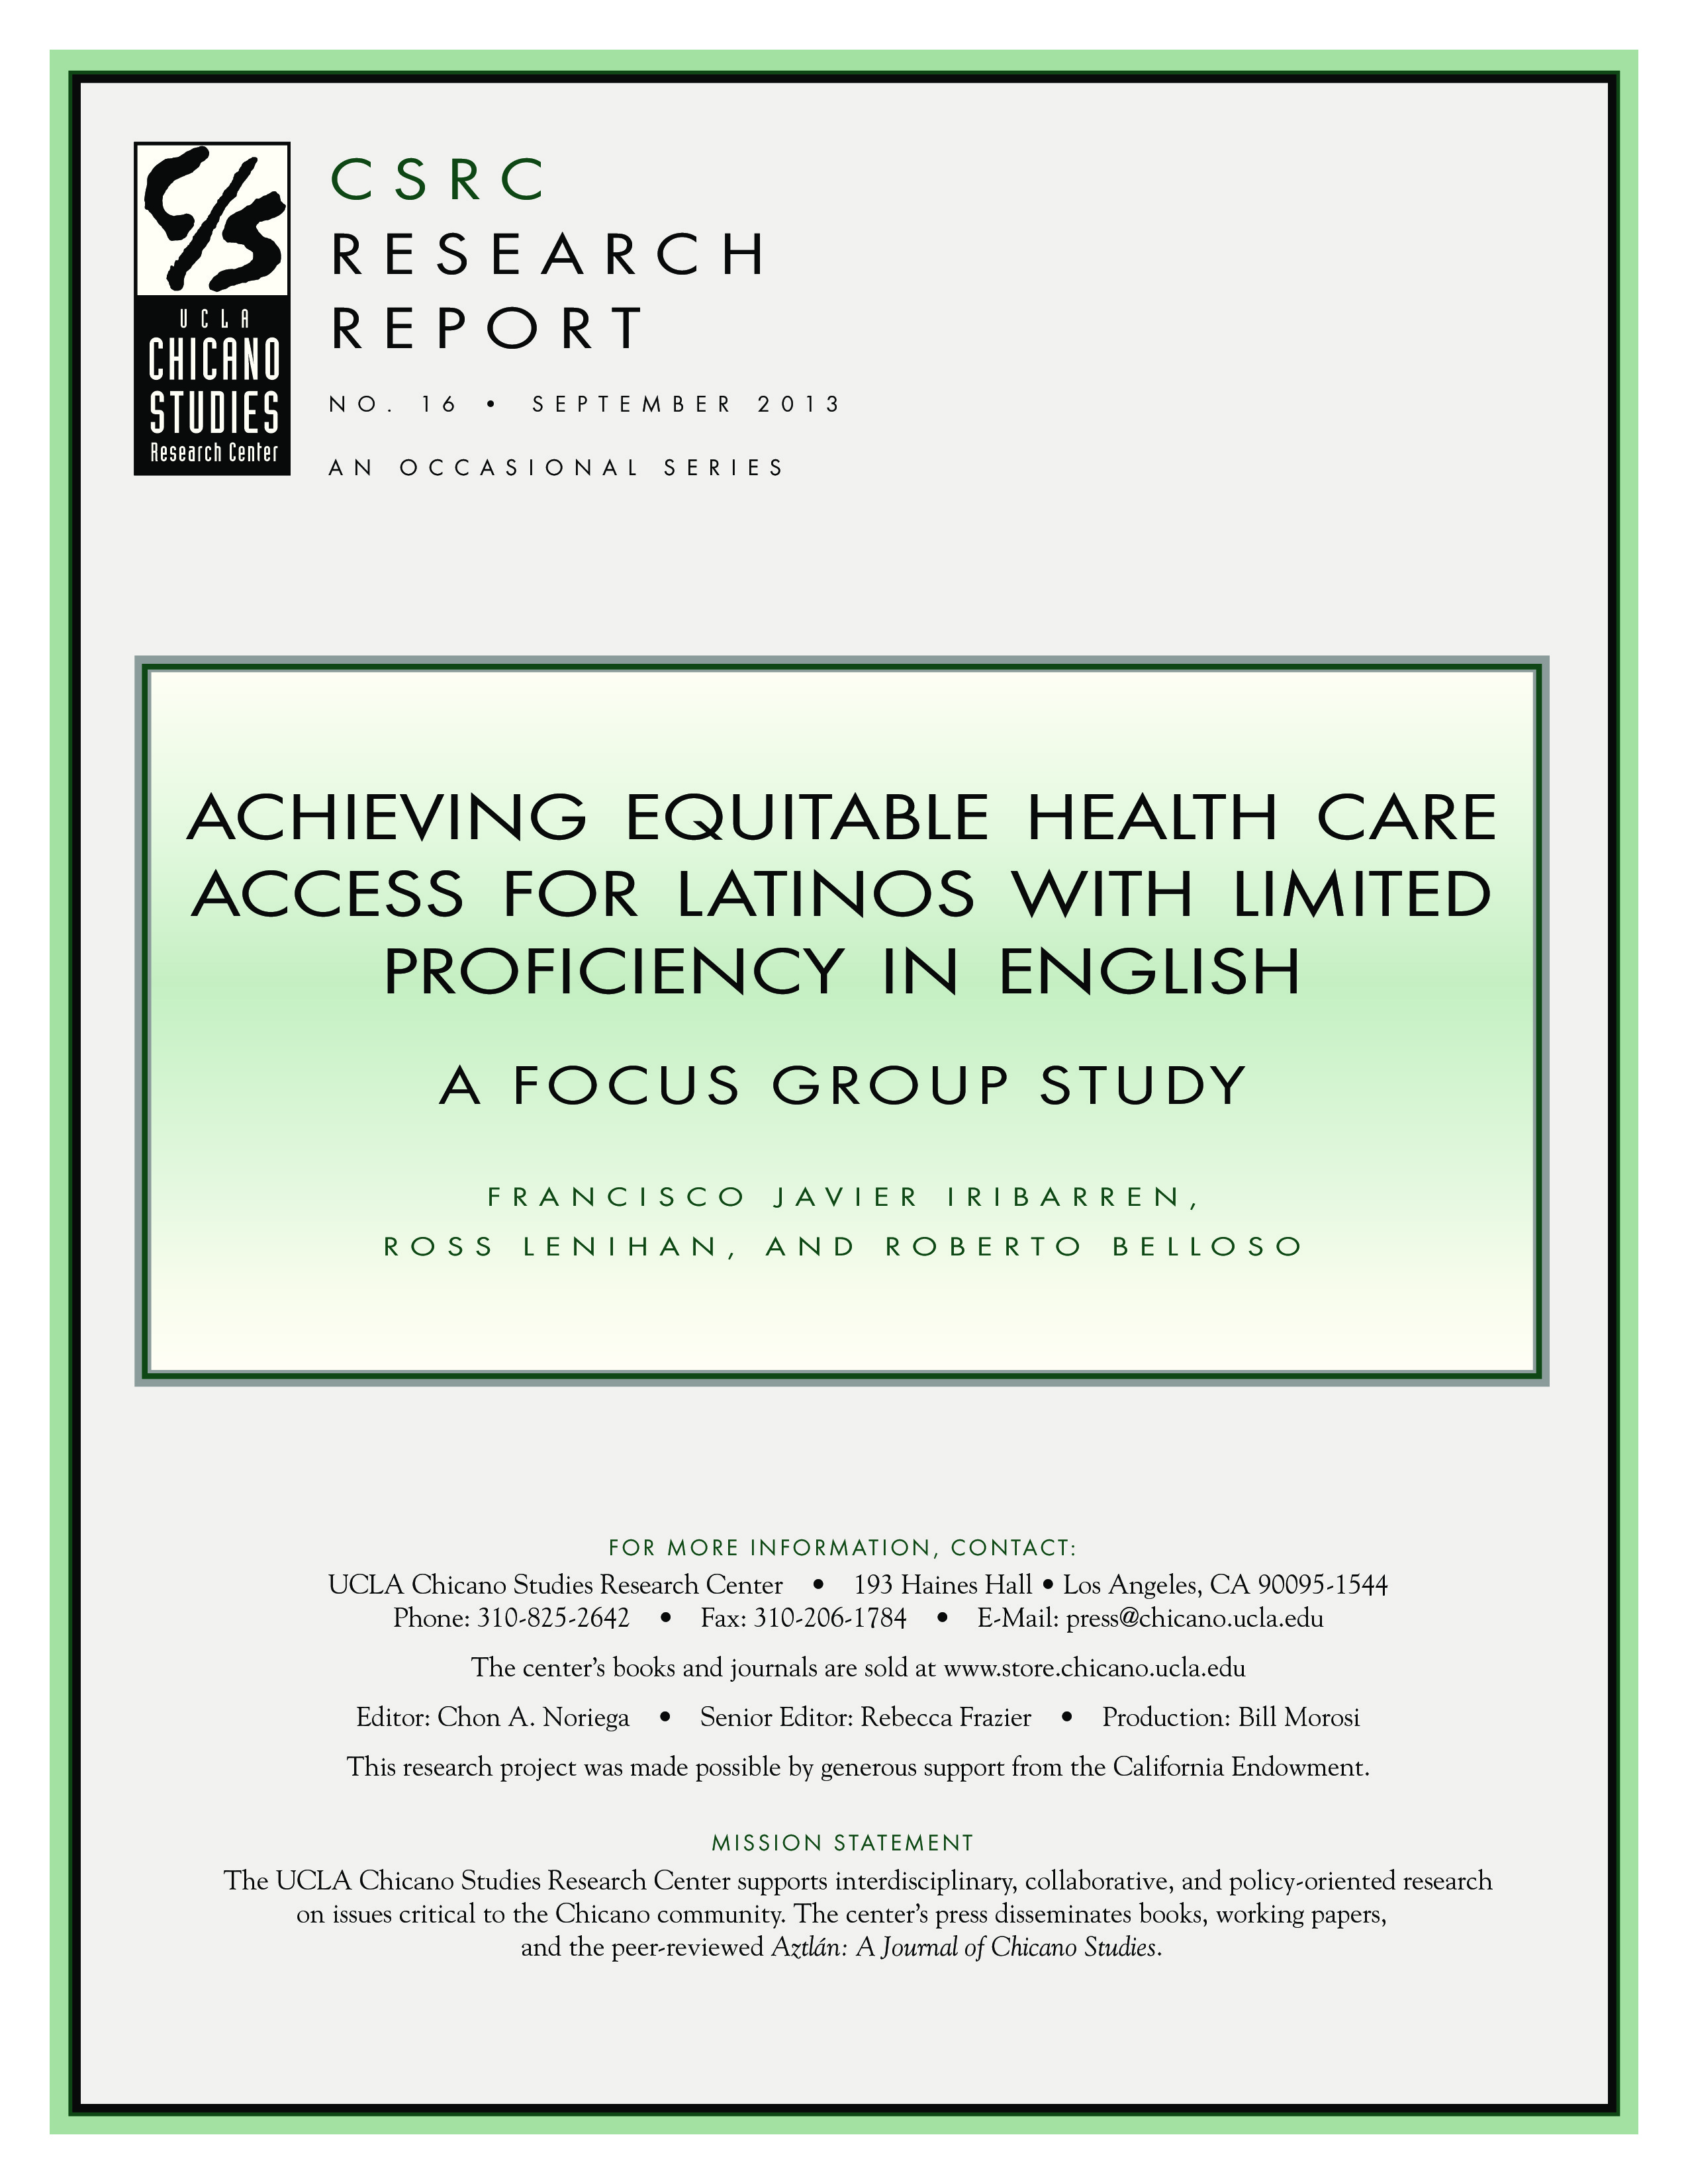 Achieving Equitable Health Care Access for Latinos with